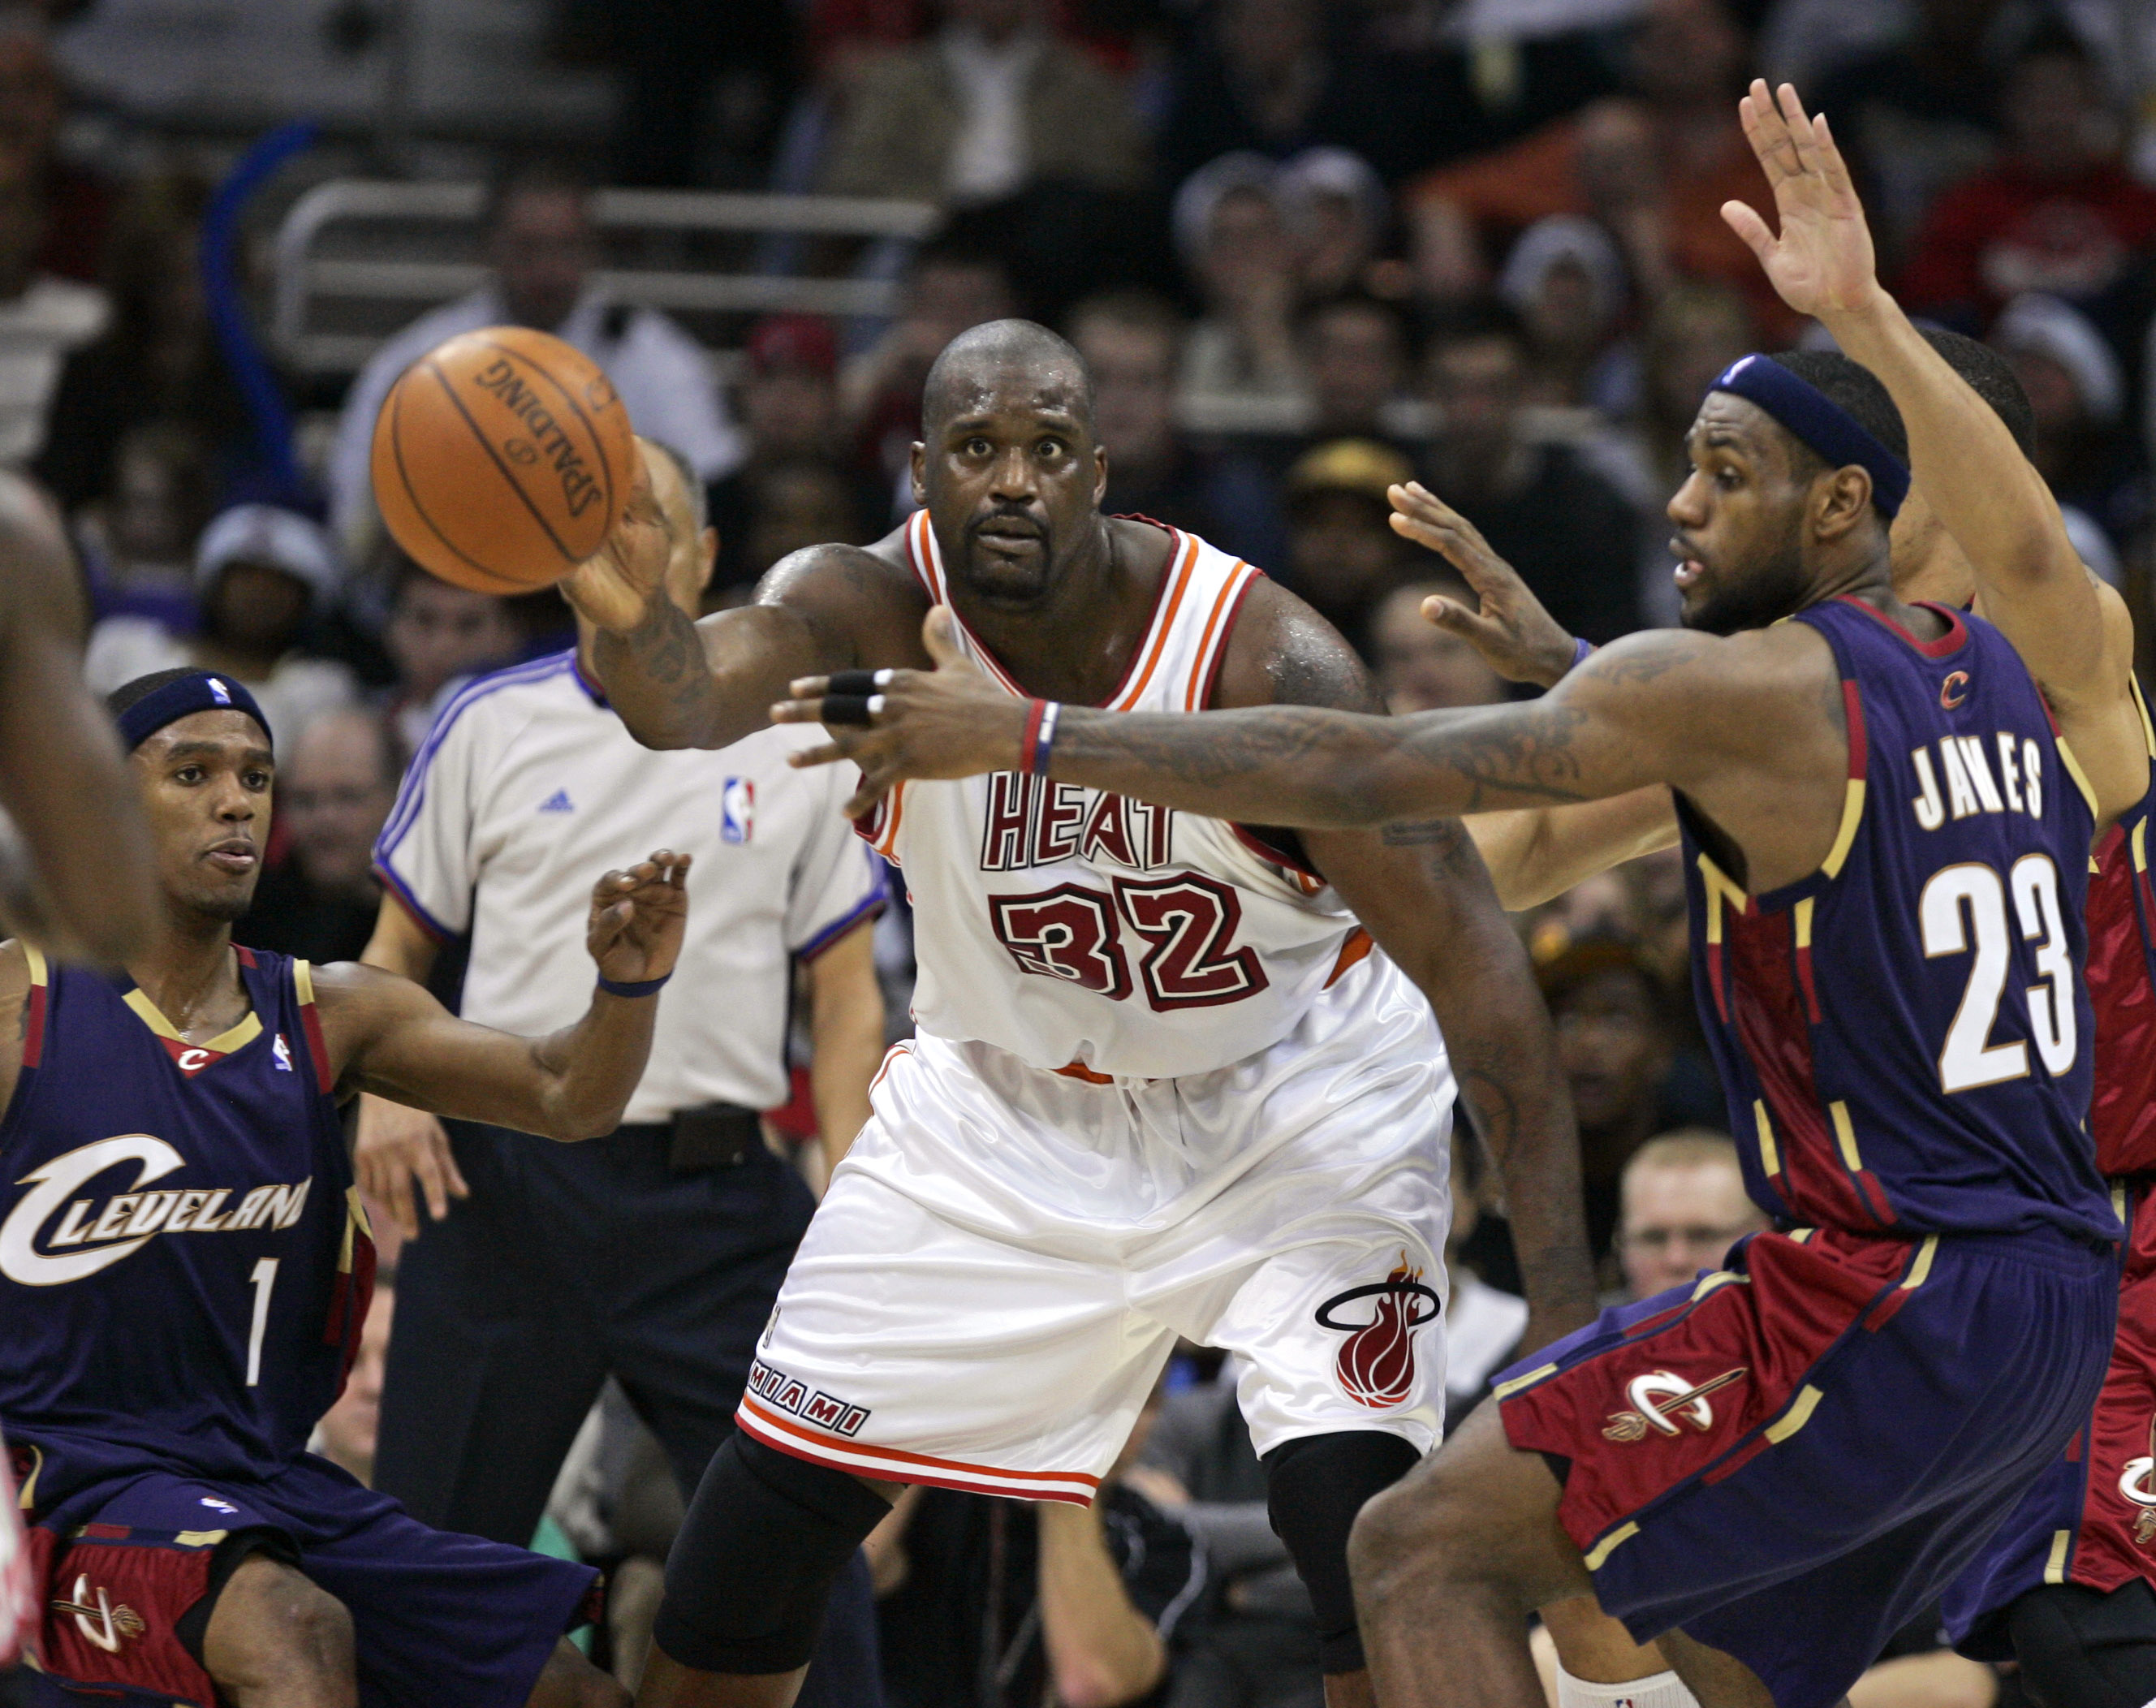 Miami Heat's Shaquille O'Neal (32) passes away from Cleveland Cavaliers' LeBron James (23) and Daniel Gibson during their NBA basketball game on Tuesd...